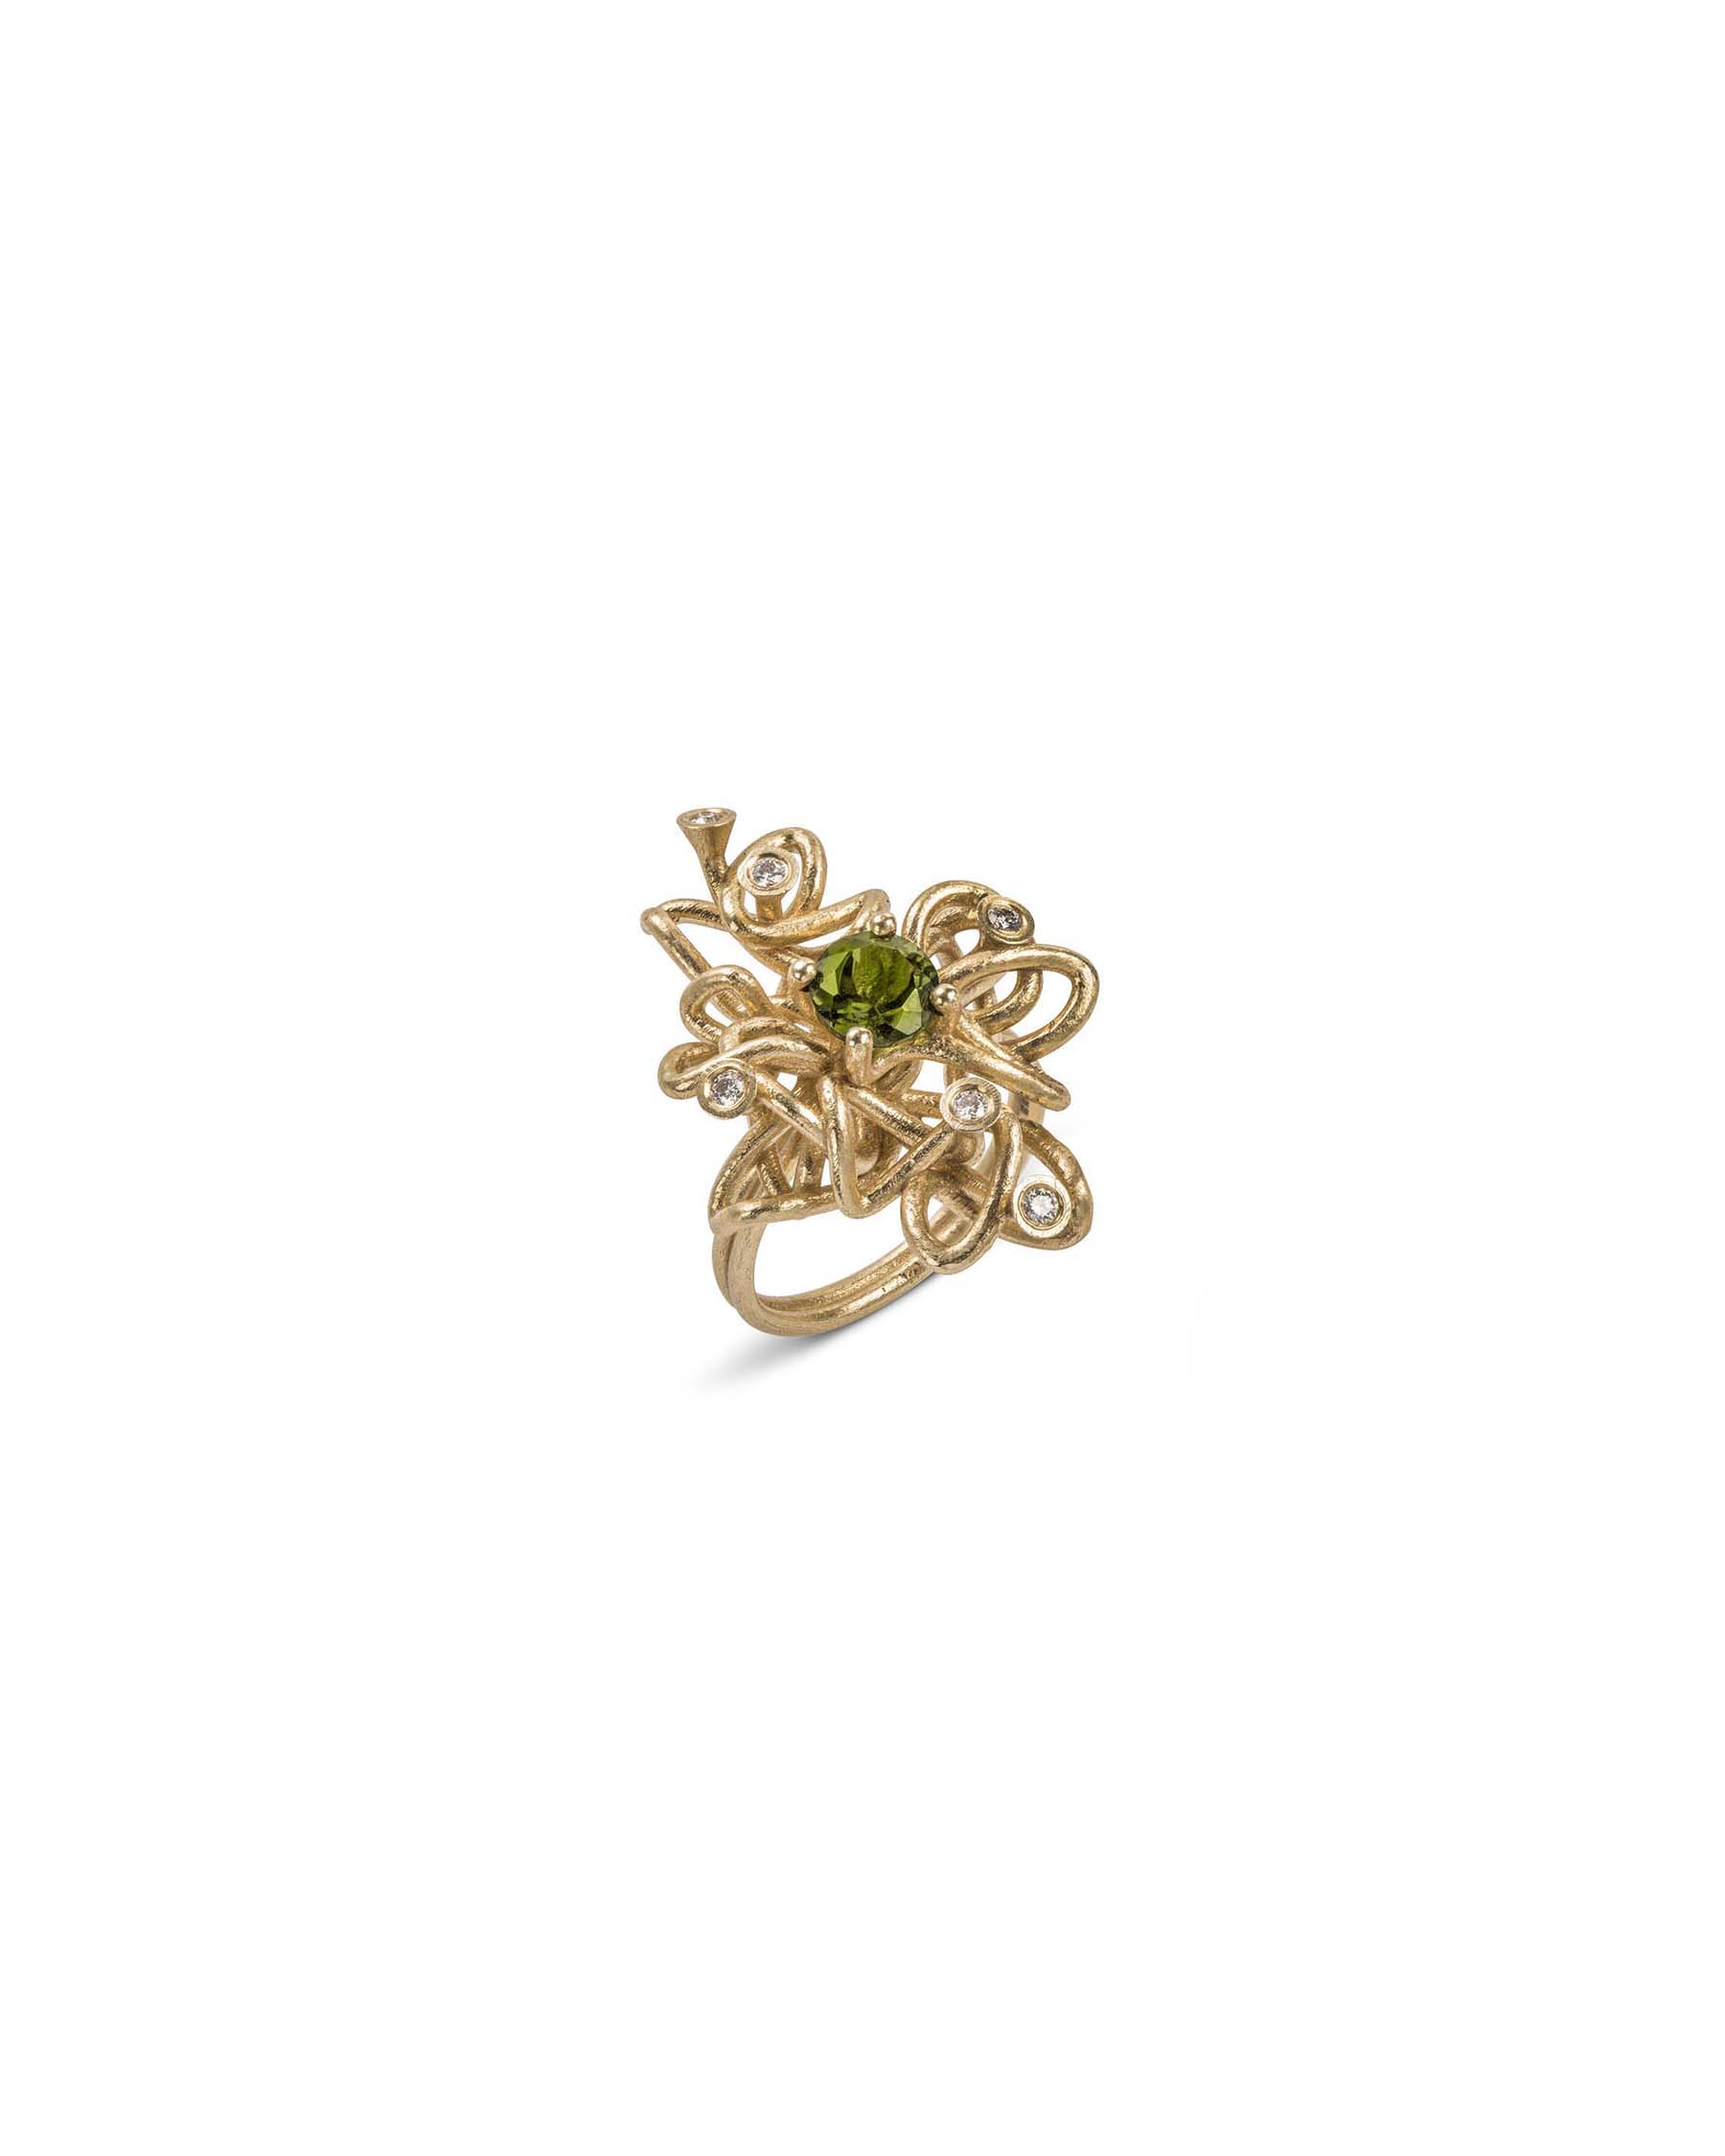 Gem and diamond knot ring